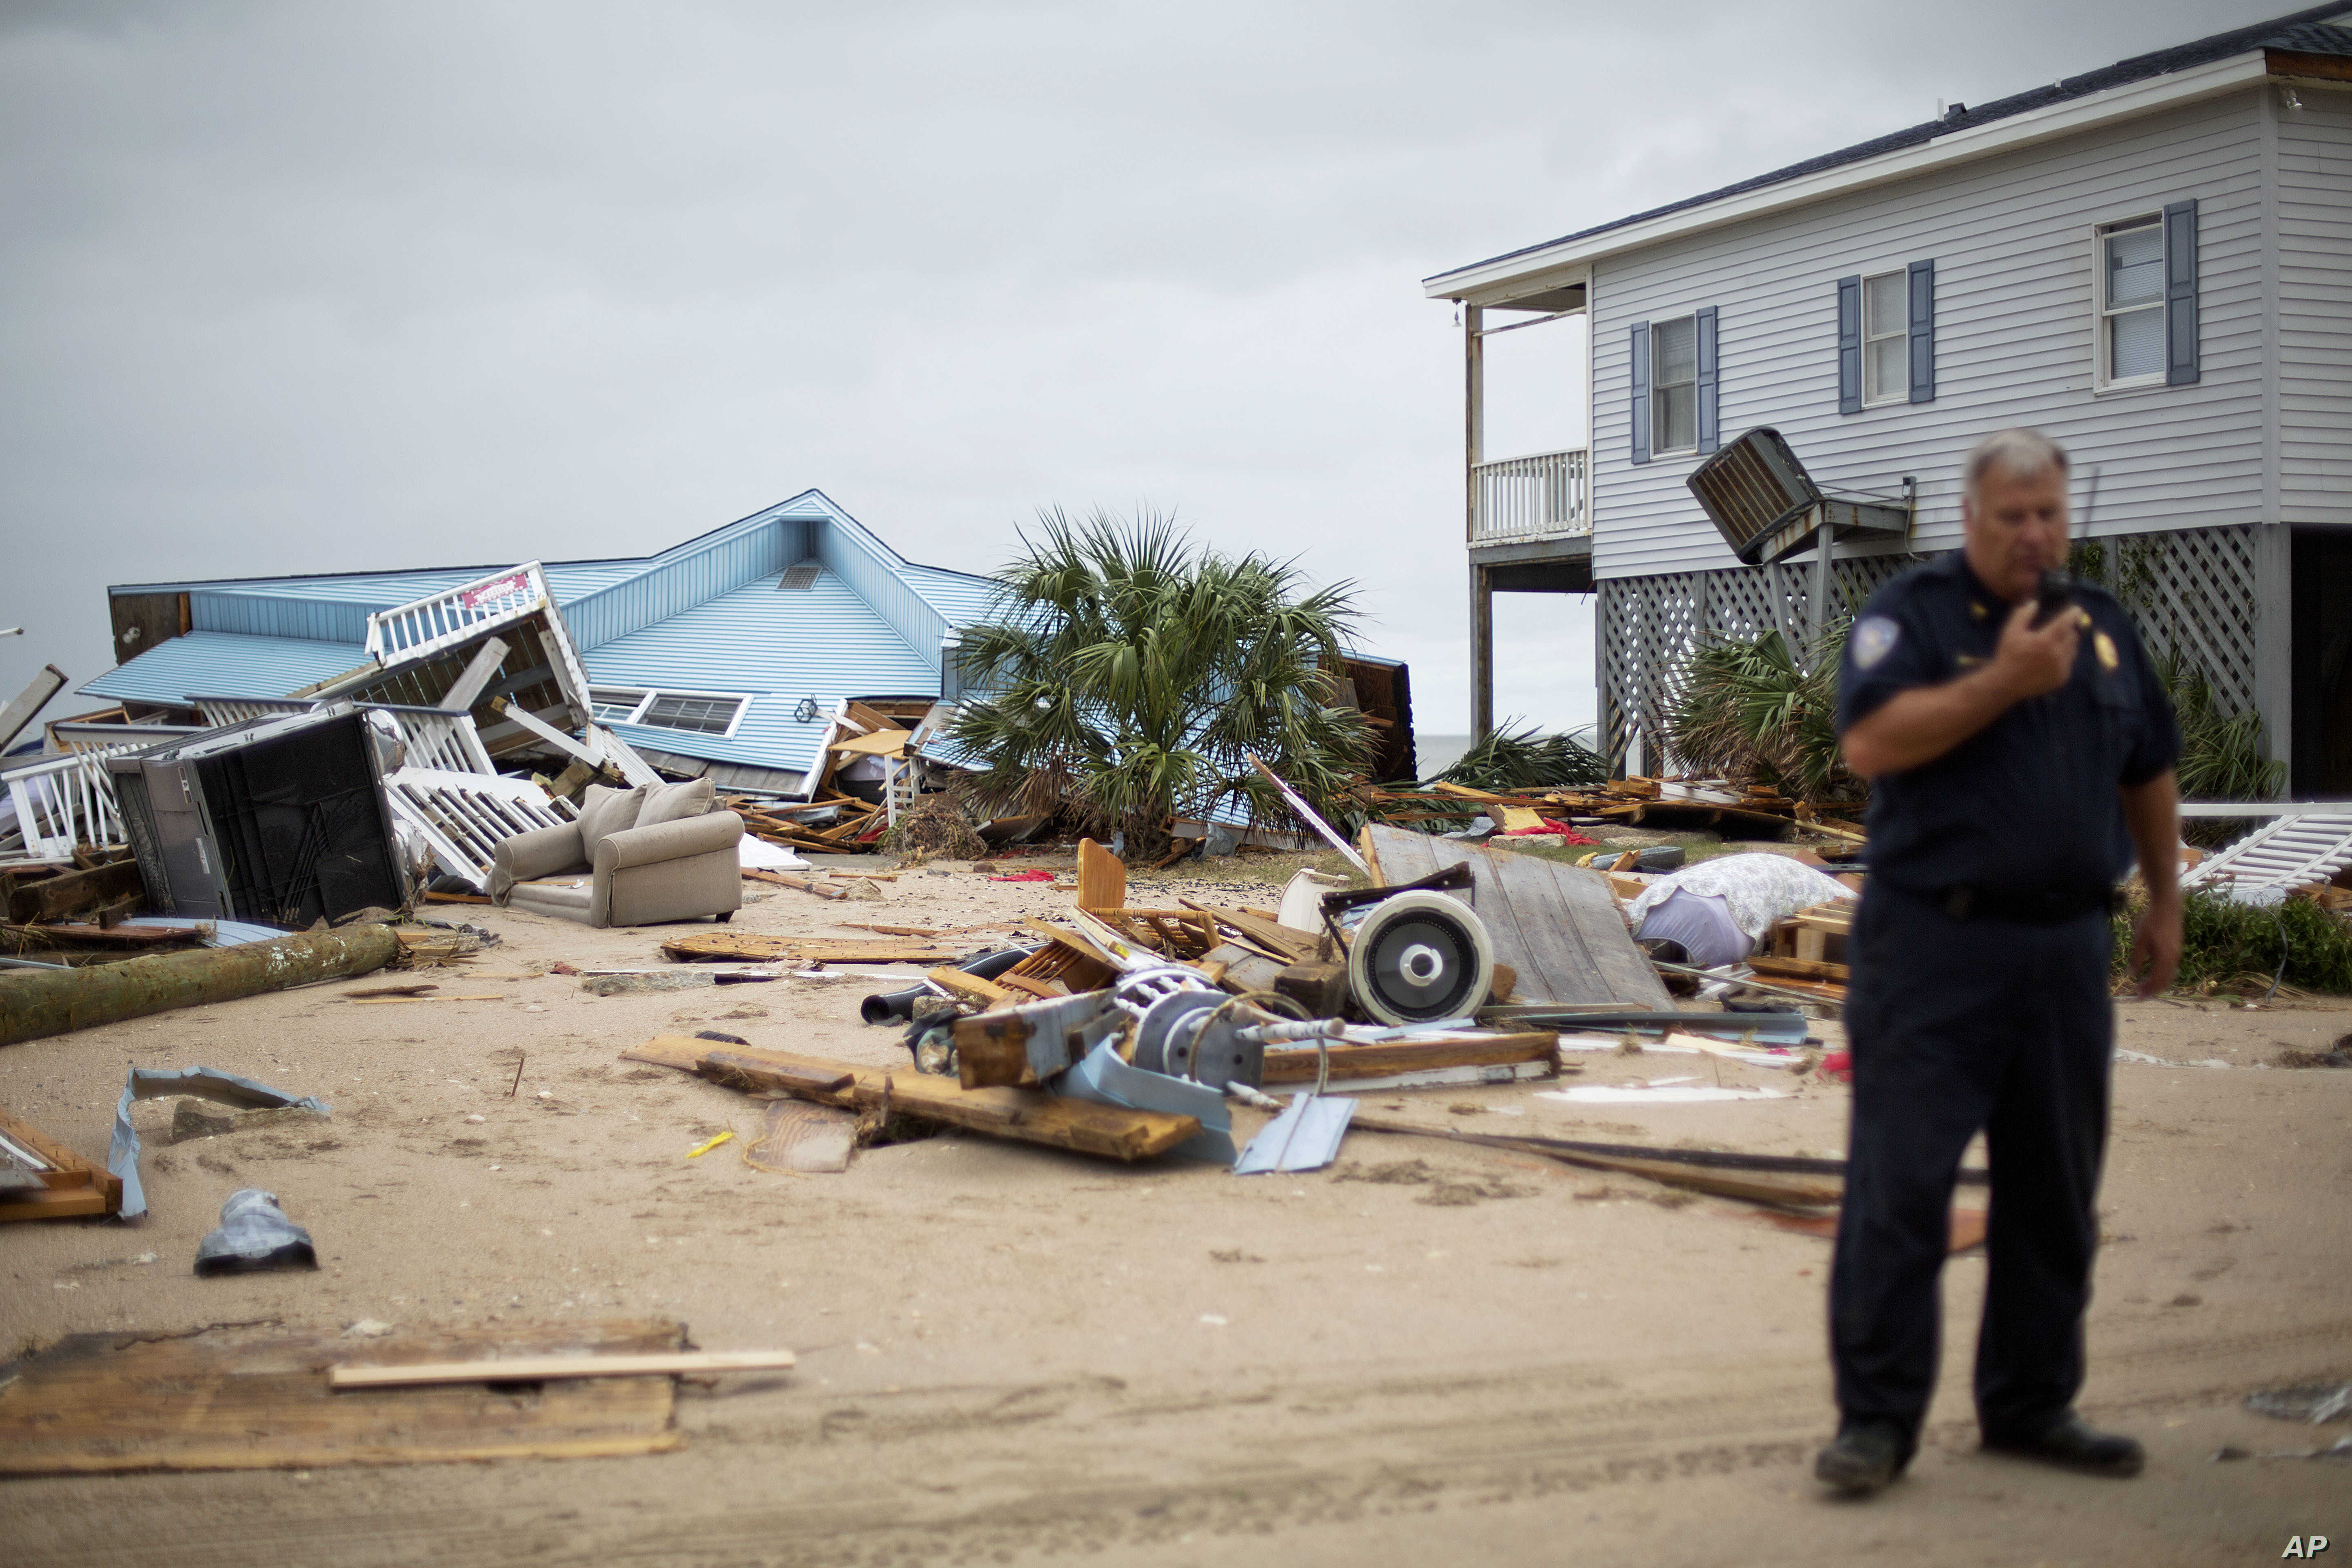 The remnants of a home leveled by Hurricane Matthew sit along the beachfront as Chief of Police George Brothers talks on the radio after Hurricane Matthew hit Edisto Beach, S.C., Oct. 8, 2016.